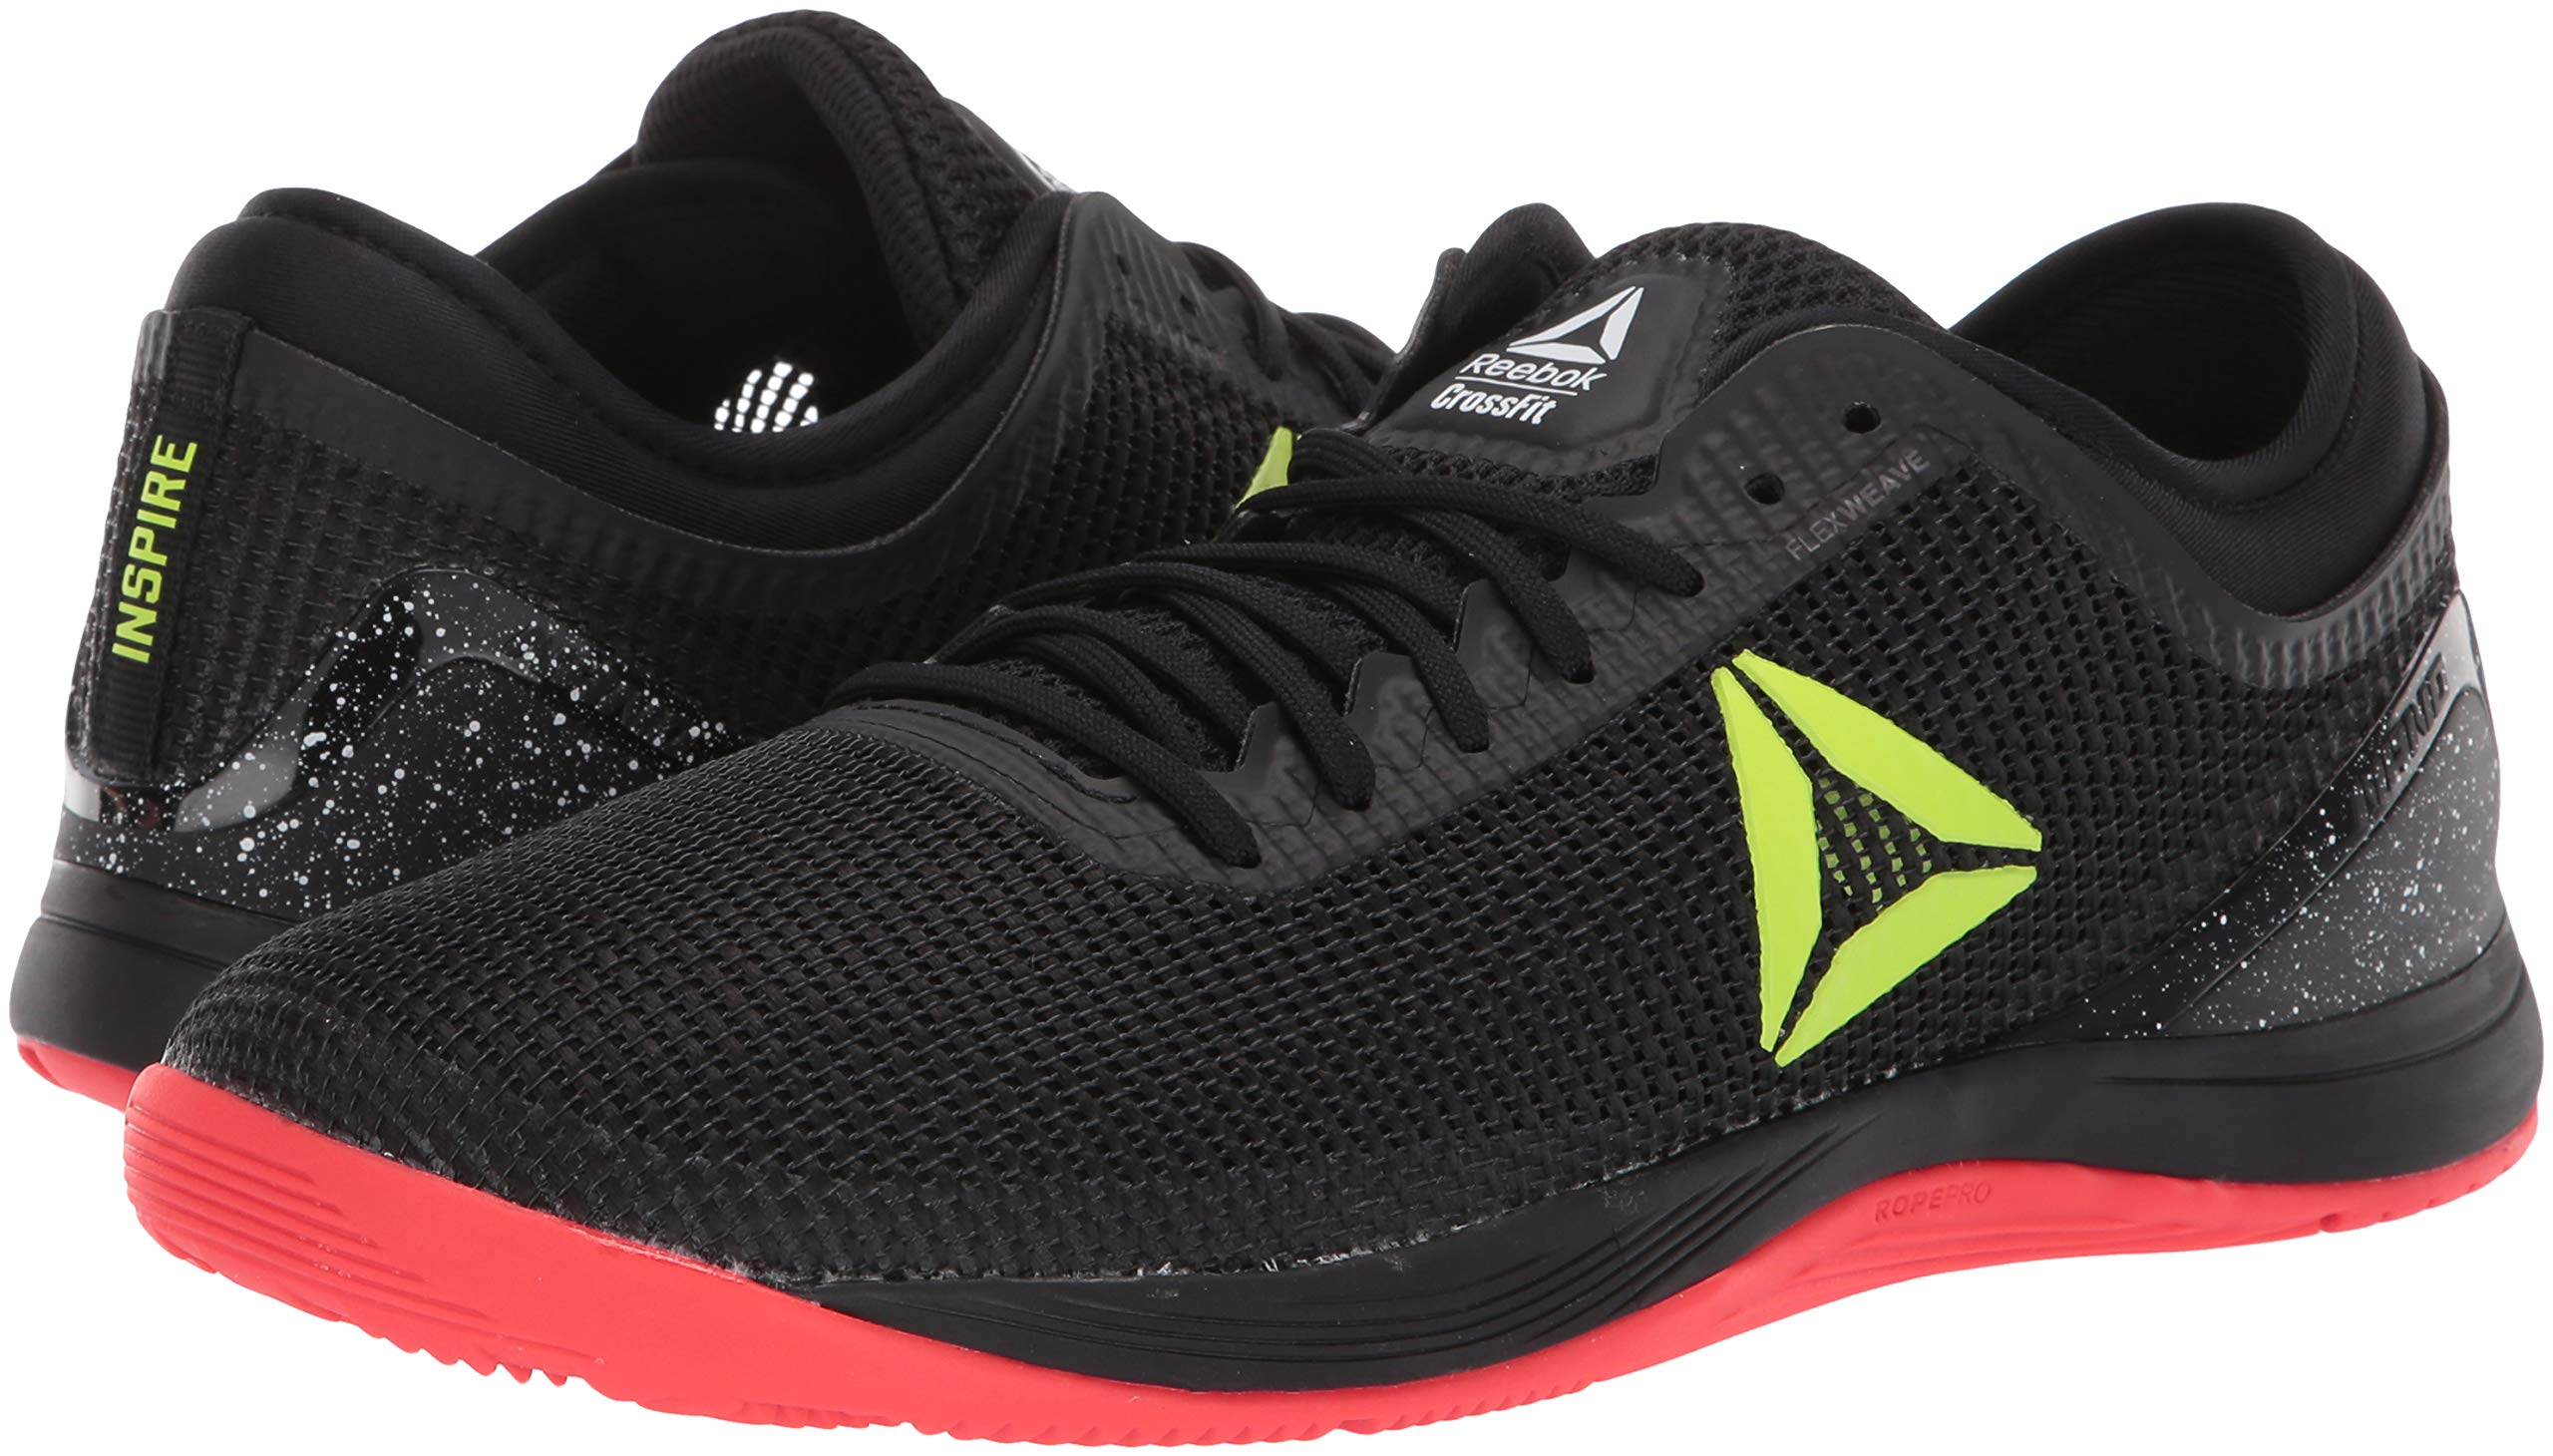 Reebok Men's CROSSFIT Nano 8.0 Flexweave Cross Trainer, Black/Neon Red/Neon Lime/White, 6.5 M US by Reebok (Image #5)